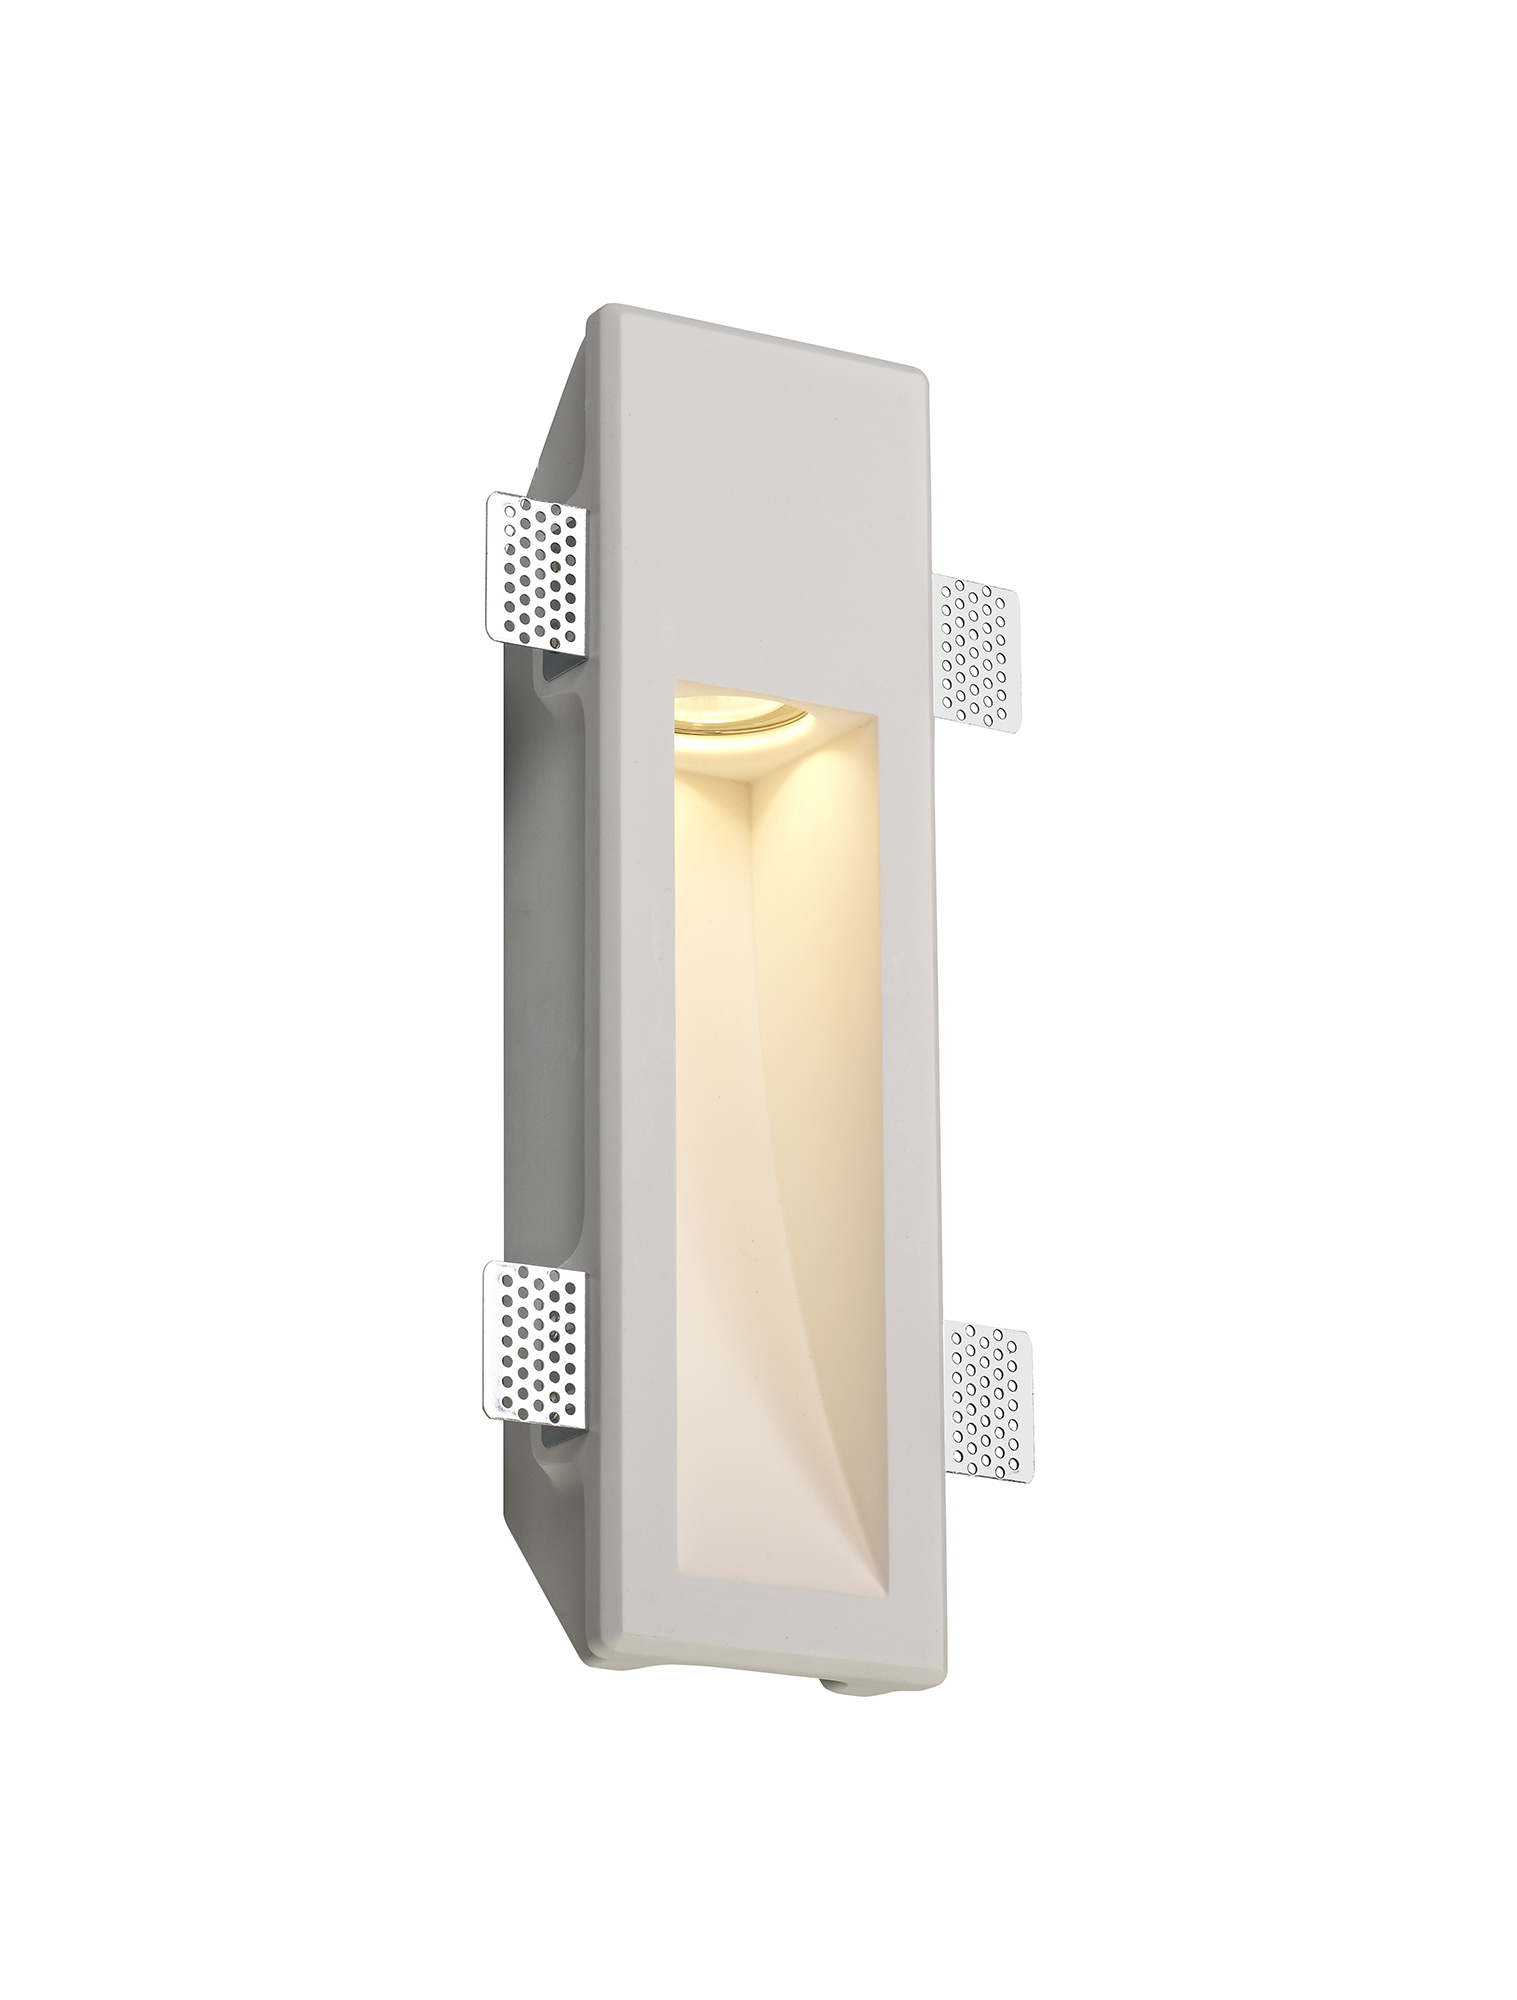 Medium Recessed Wall Lamp, 1 x GU10, White Paintable Gypsum, Cut Out: L:353mmxW:103mm